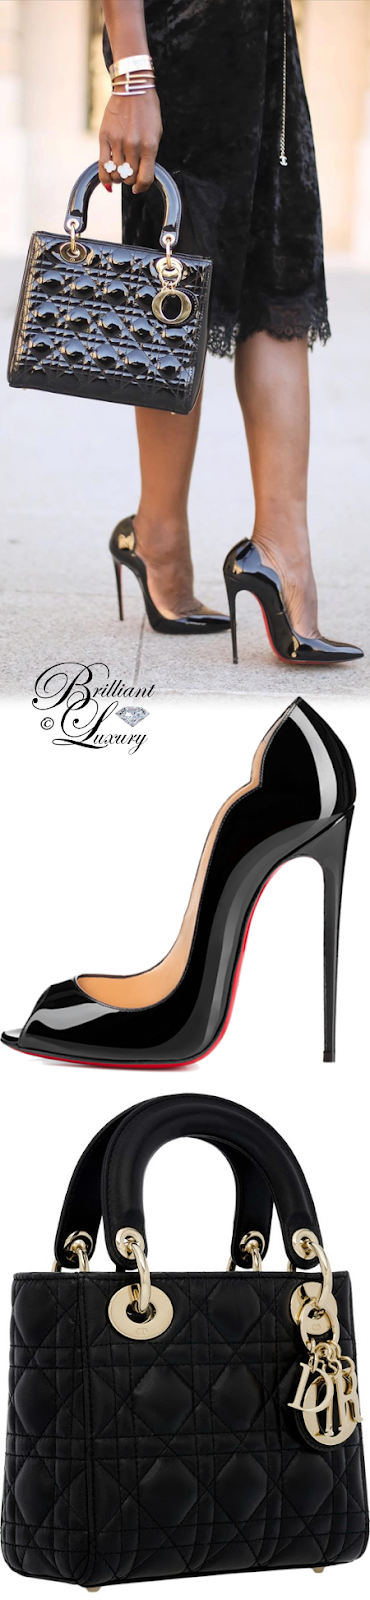 Brilliant Luxury ♦ Lady Dior bag and Christian Louboutin New Wave pumps #streetstyle #black